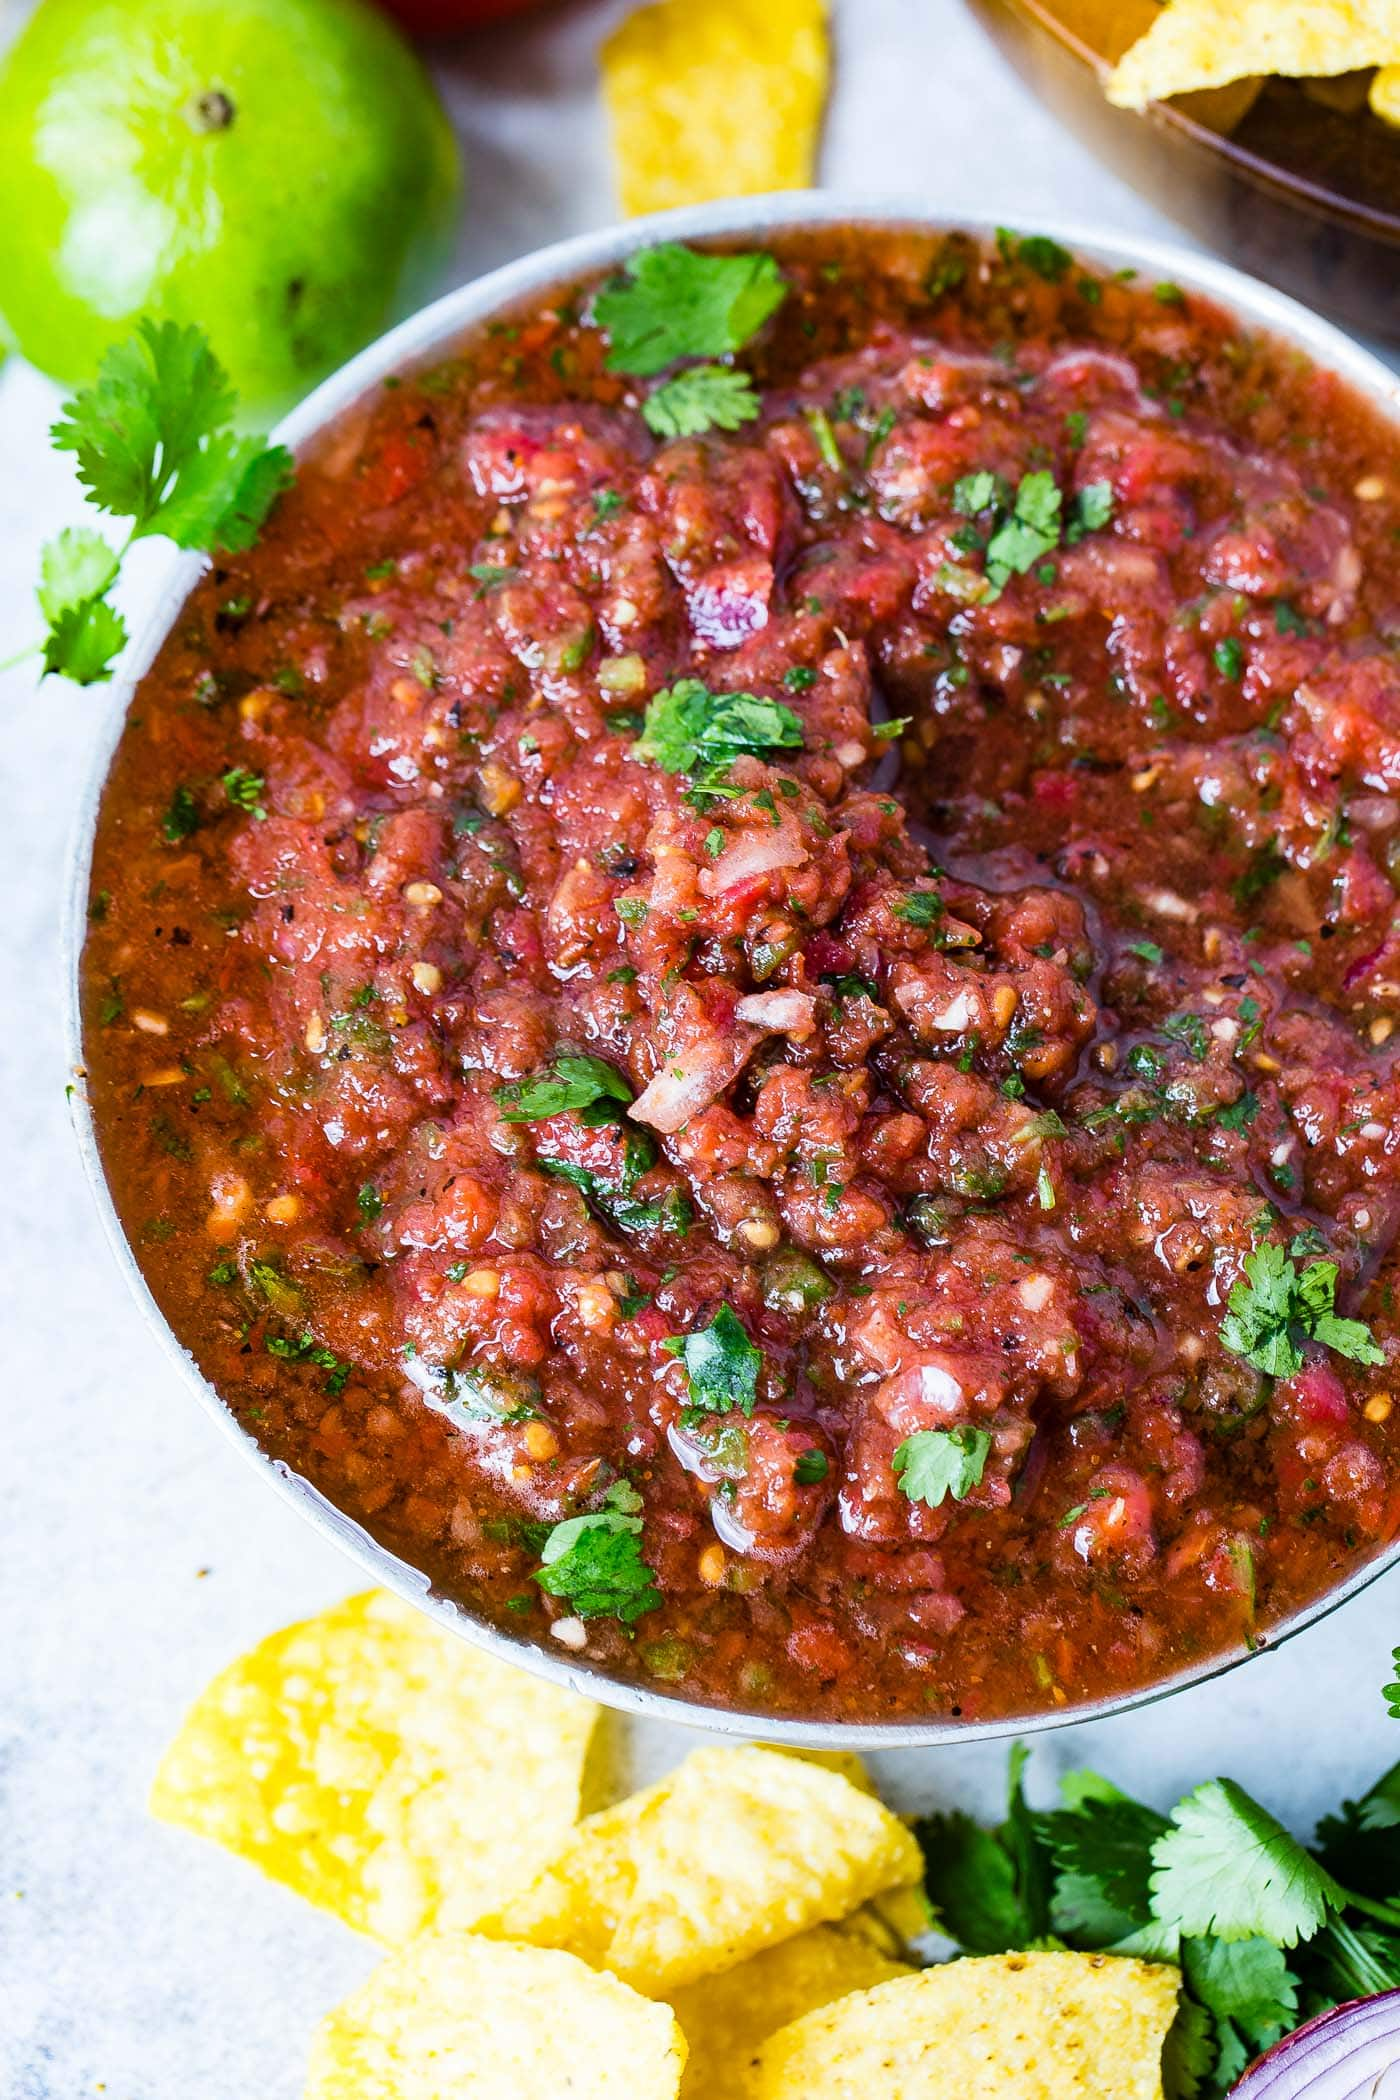 A close-up picture of fresh salsa with chopped tomatoes, jalapenos, onions, spices and cilantro leaves on top.